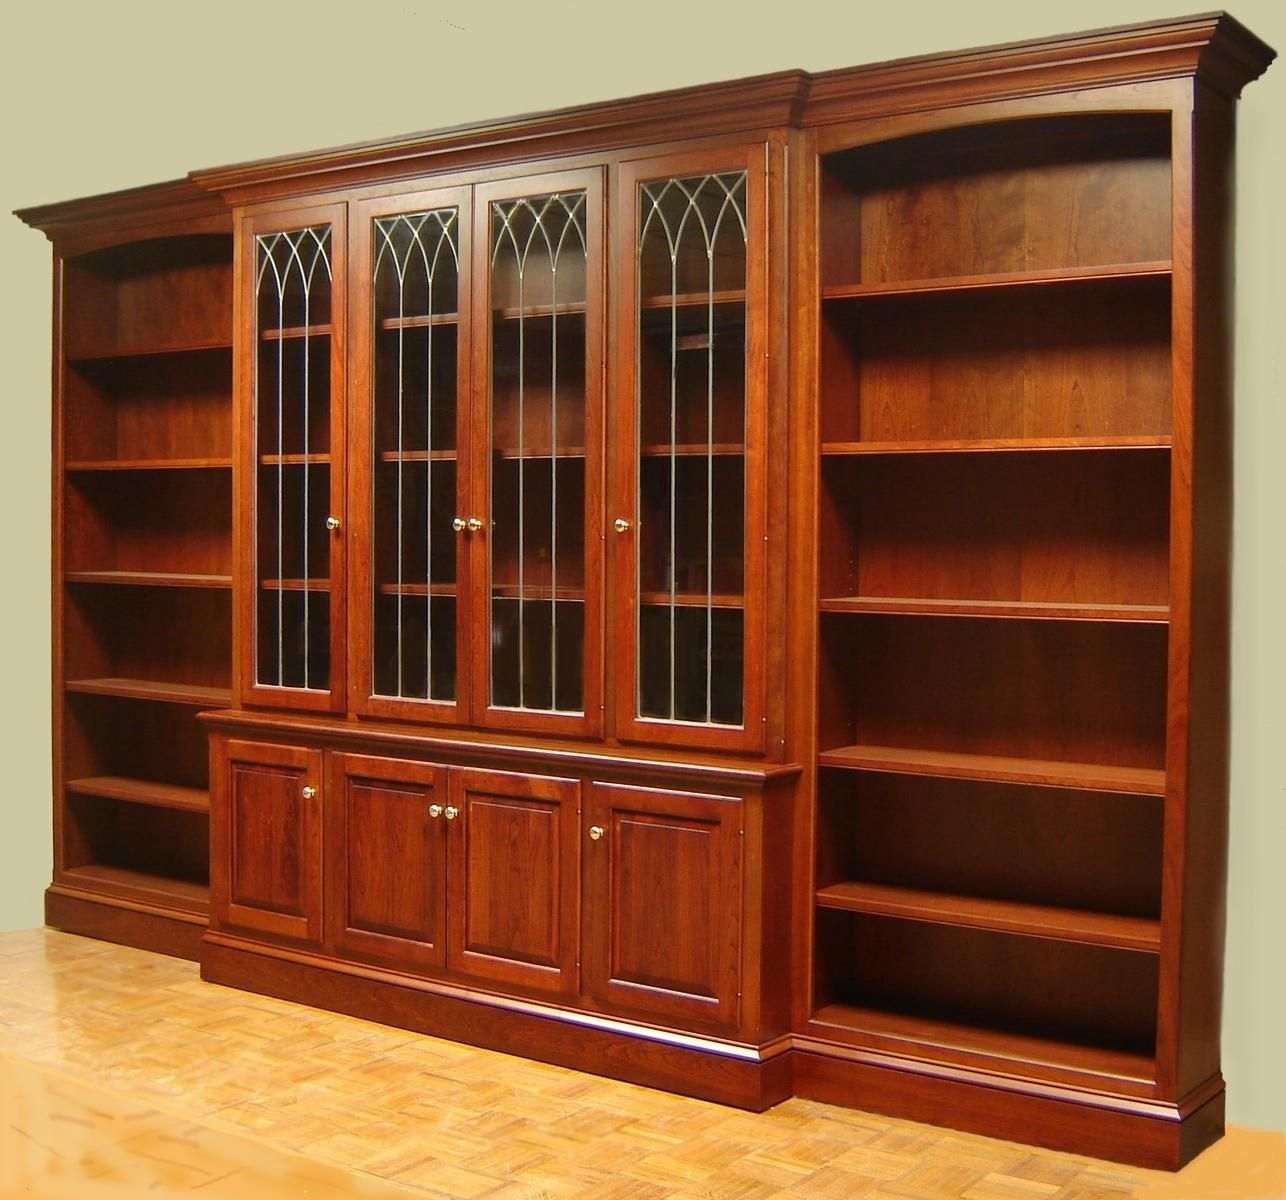 Extra Large Bookcase Best Way To Paint Furniture Check More At Http